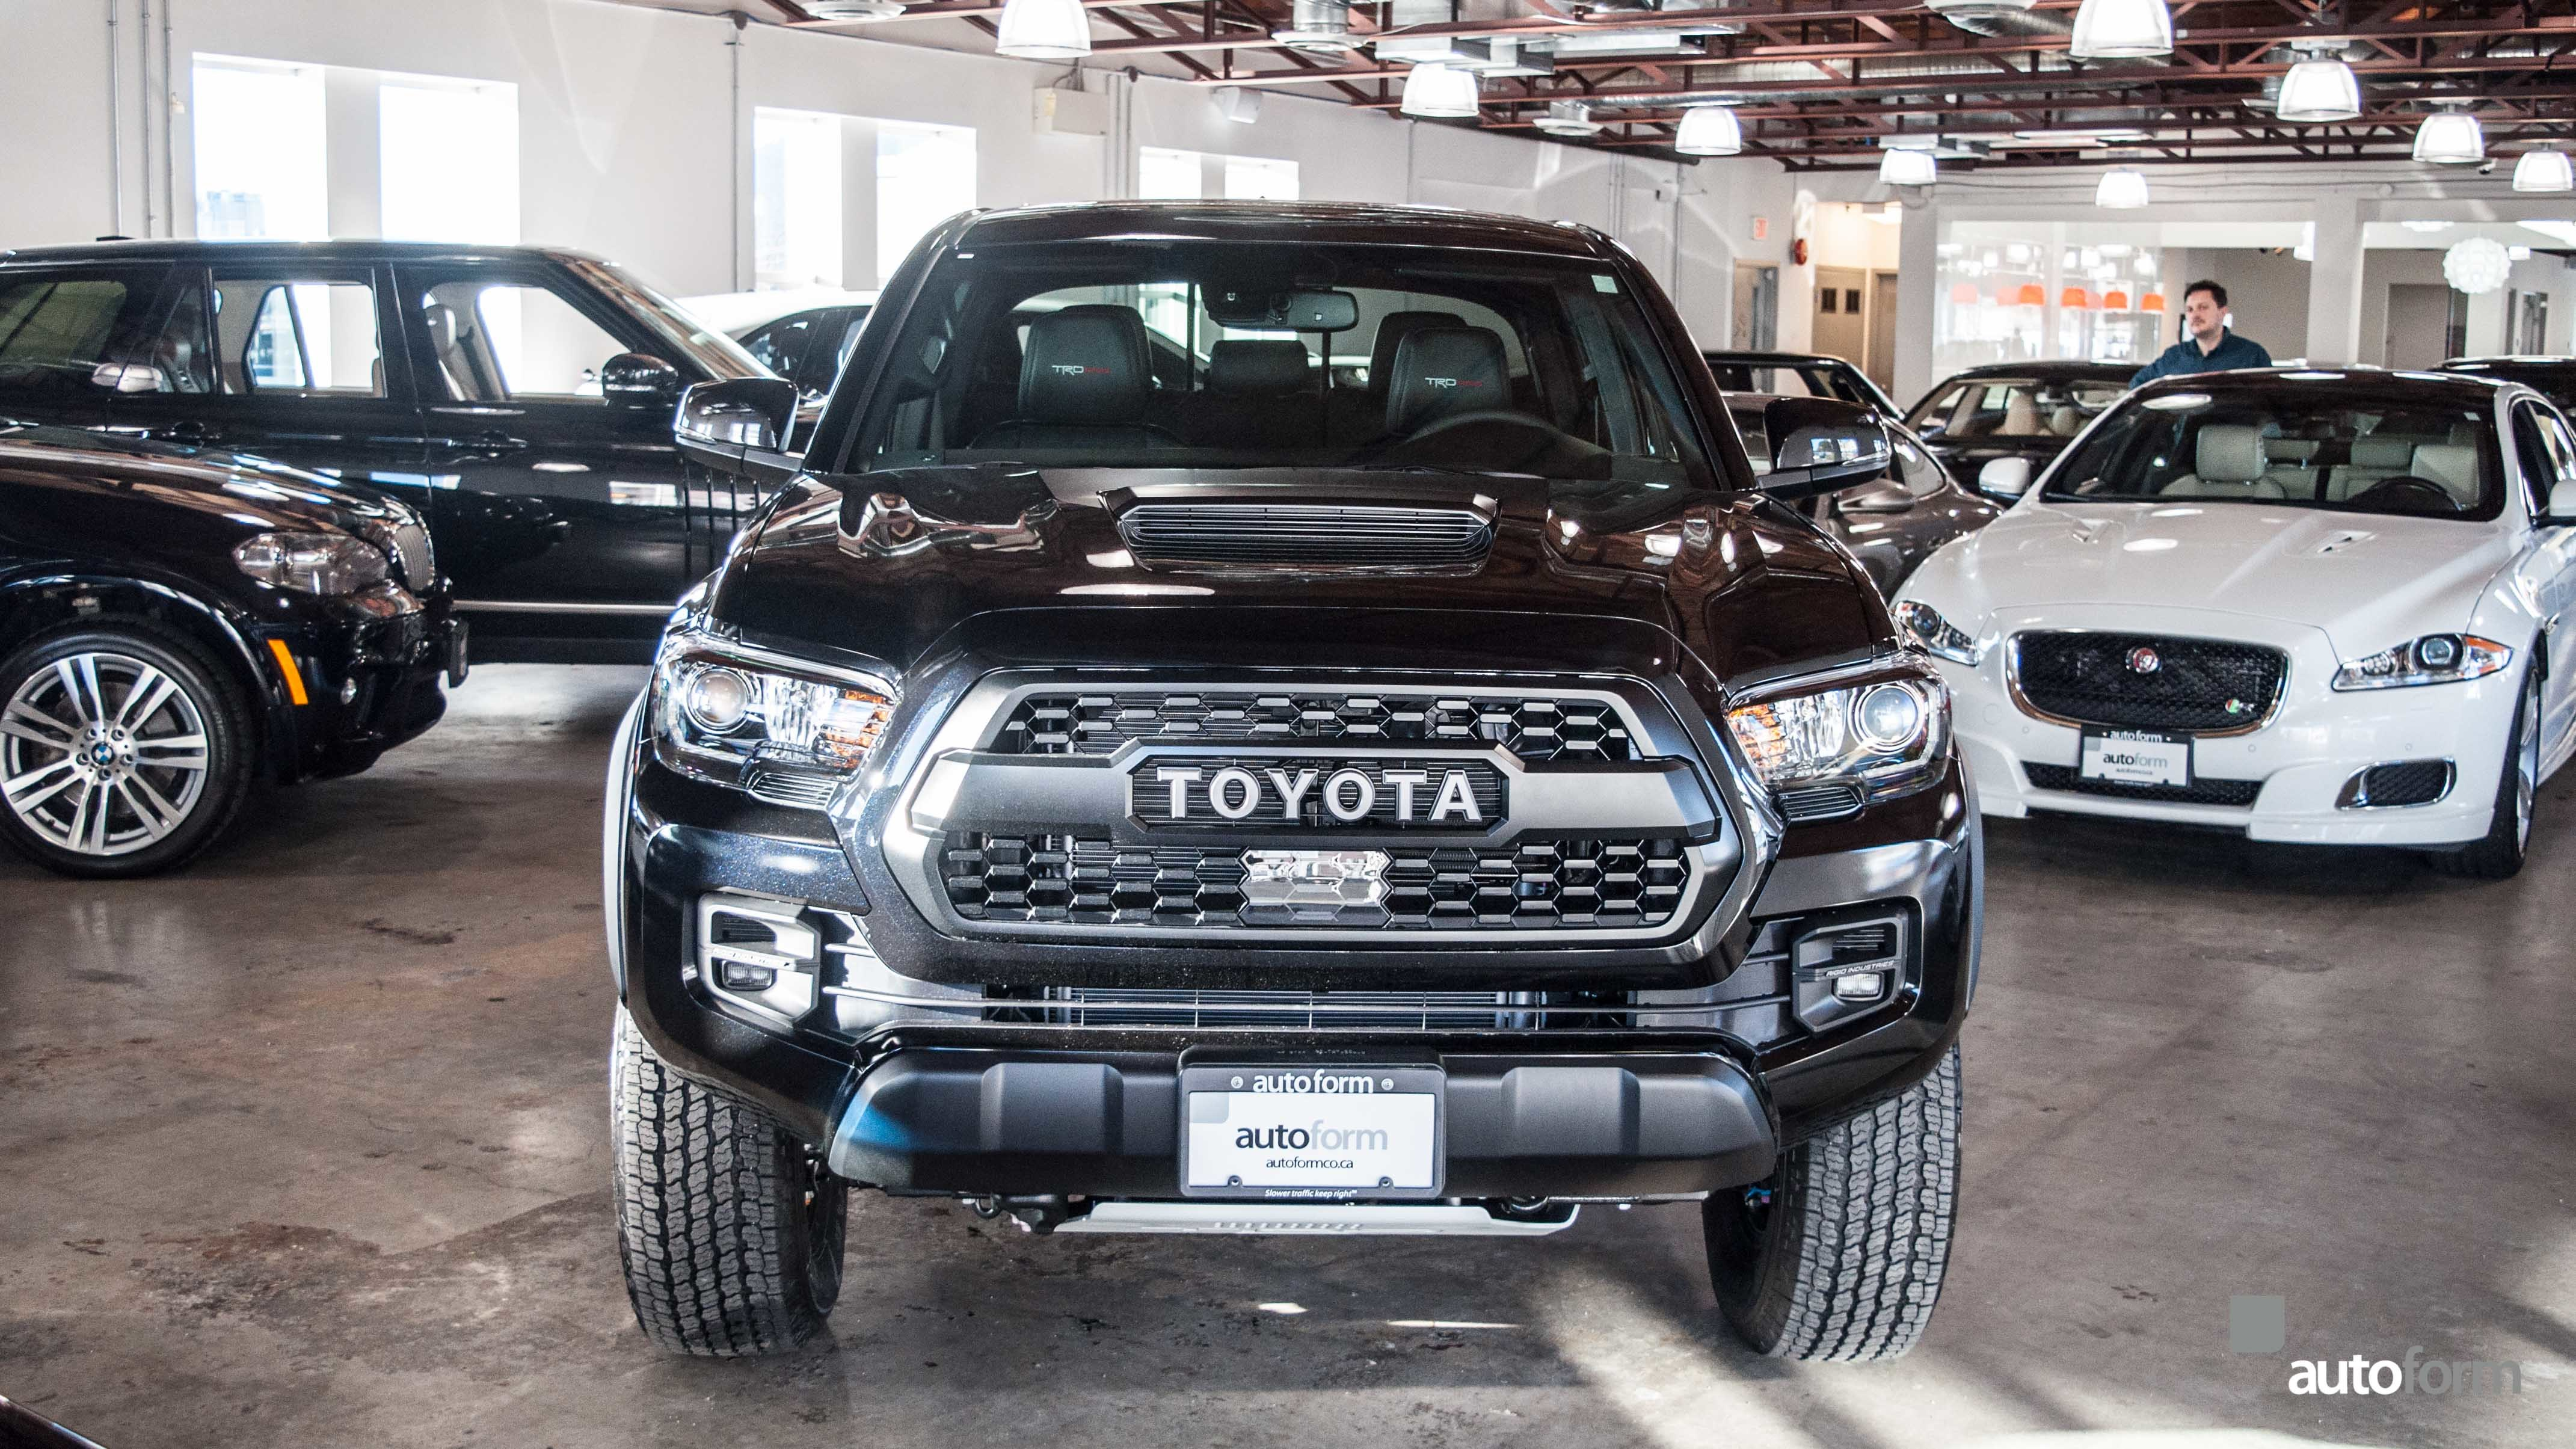 Best Luxury Cars To Lease >> 2018 Toyota Tacoma TRD PRO | Autoform